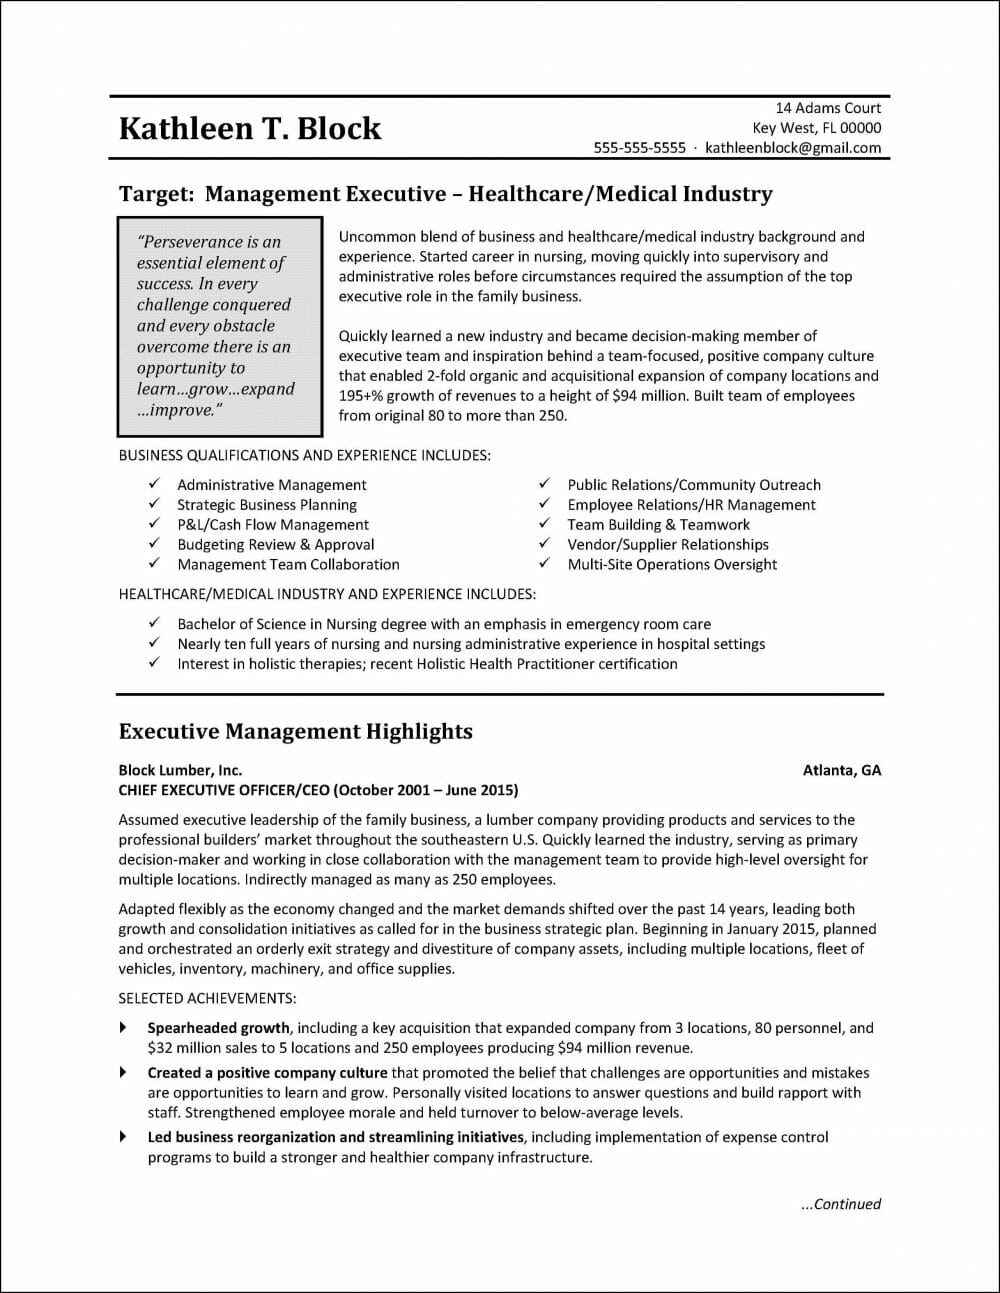 Professionally Written Resume Examples Distinctive Career Services